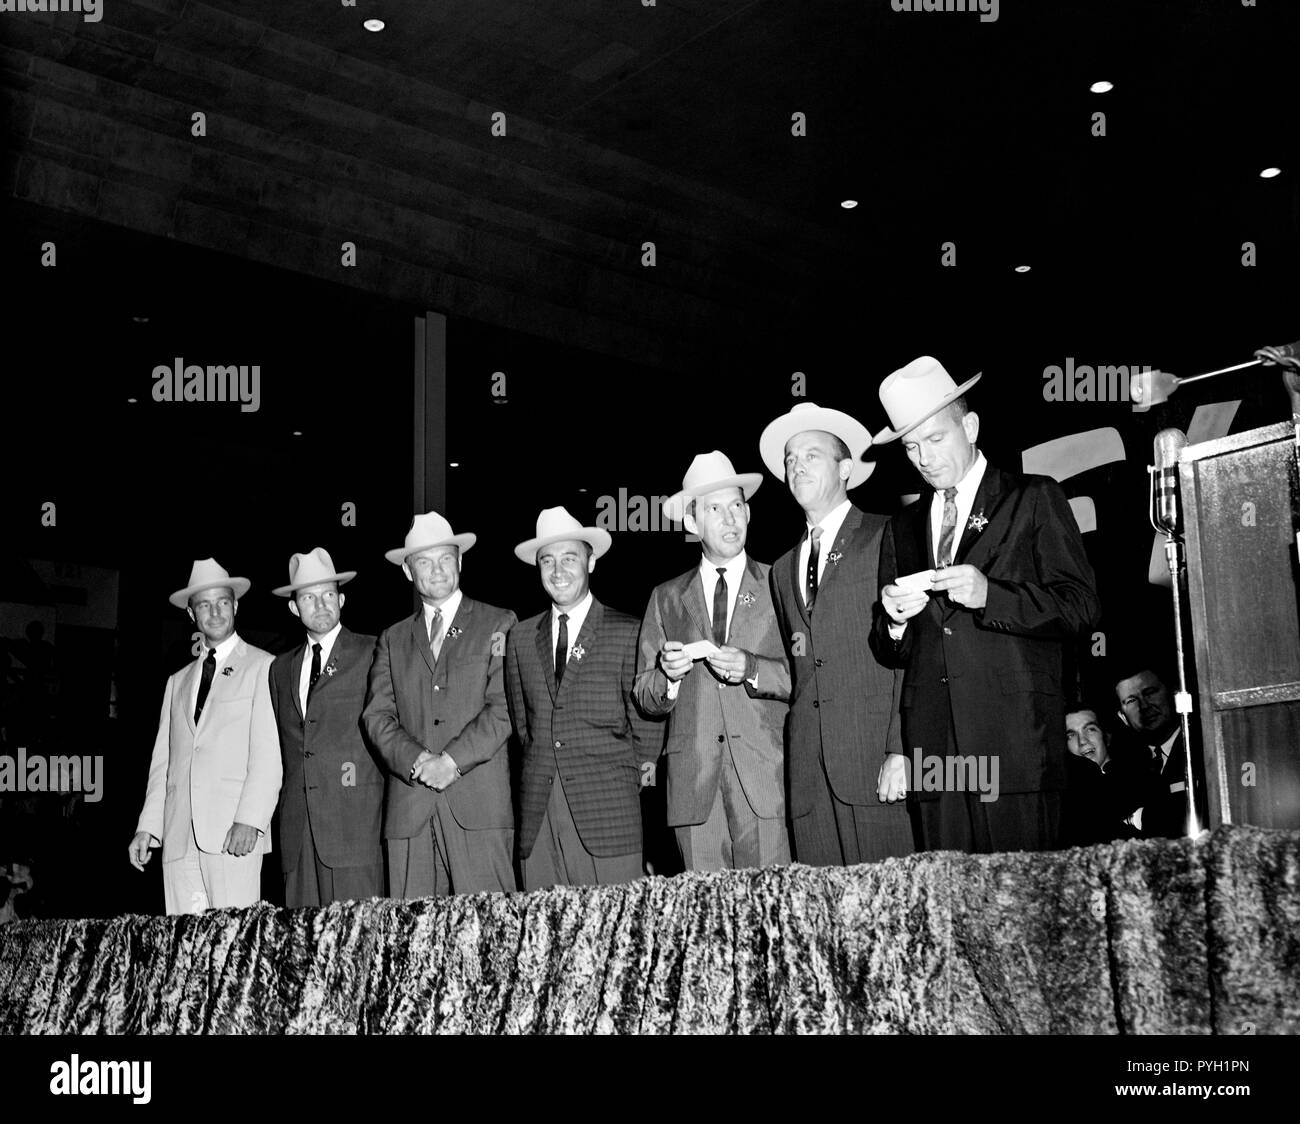 (4 July 1962) --- The original seven Mercury astronauts, each wearing new cowboy hats and a badge in the shape of a star, are pictured on stage at the Sam Houston Coliseum. A large crowd was on hand to welcome them to Houston, Texas. Left to right are astronauts M. Scott Carpenter, L. Gordon Cooper Jr., John H. Glenn Jr., Virgil I. Grissom, Walter M. Schirra Jr., Alan B. Shepard Jr., and Donald K. Slayton. Sen. John Tower (R.-Texas) is seen in far right background. - Stock Image